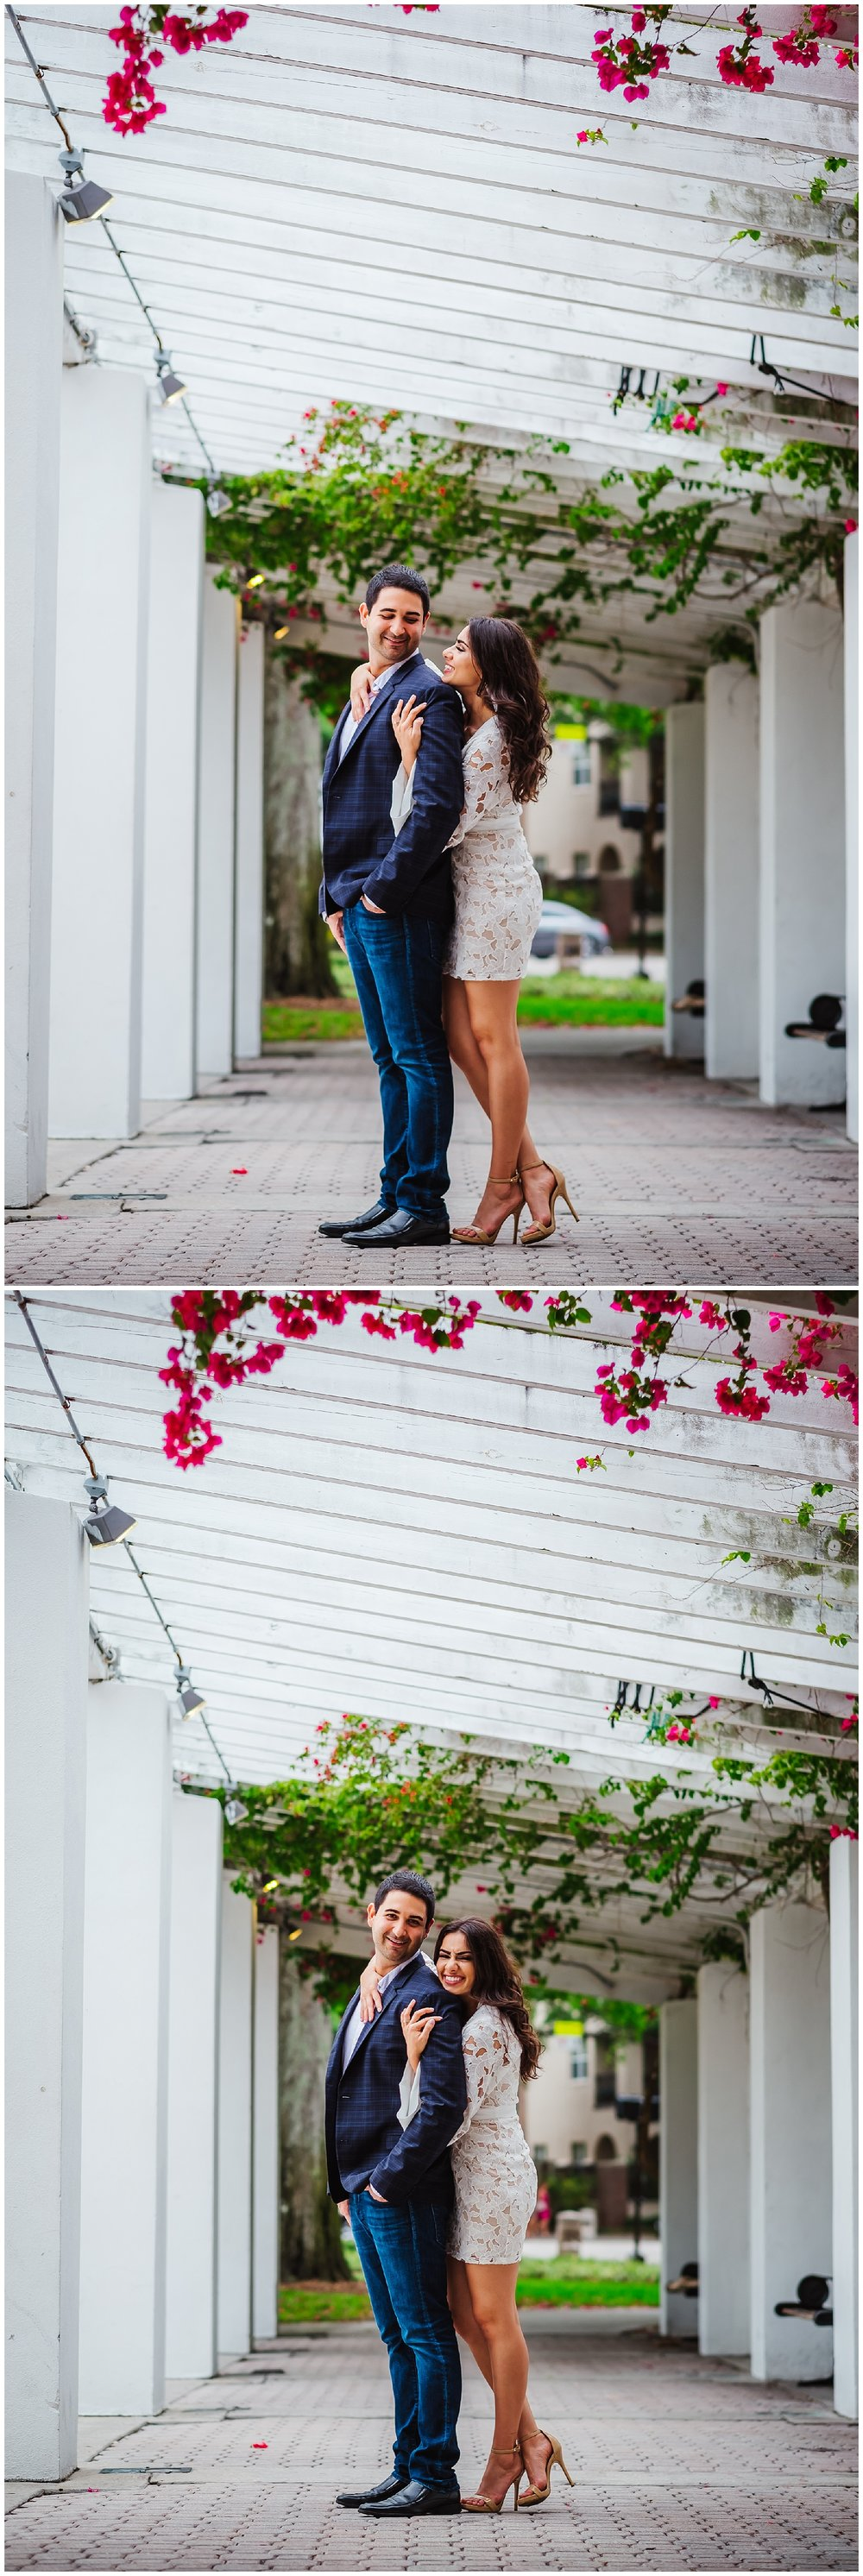 sunken-gardens-engagement-session-photos-teal-flamingos_0027.jpg